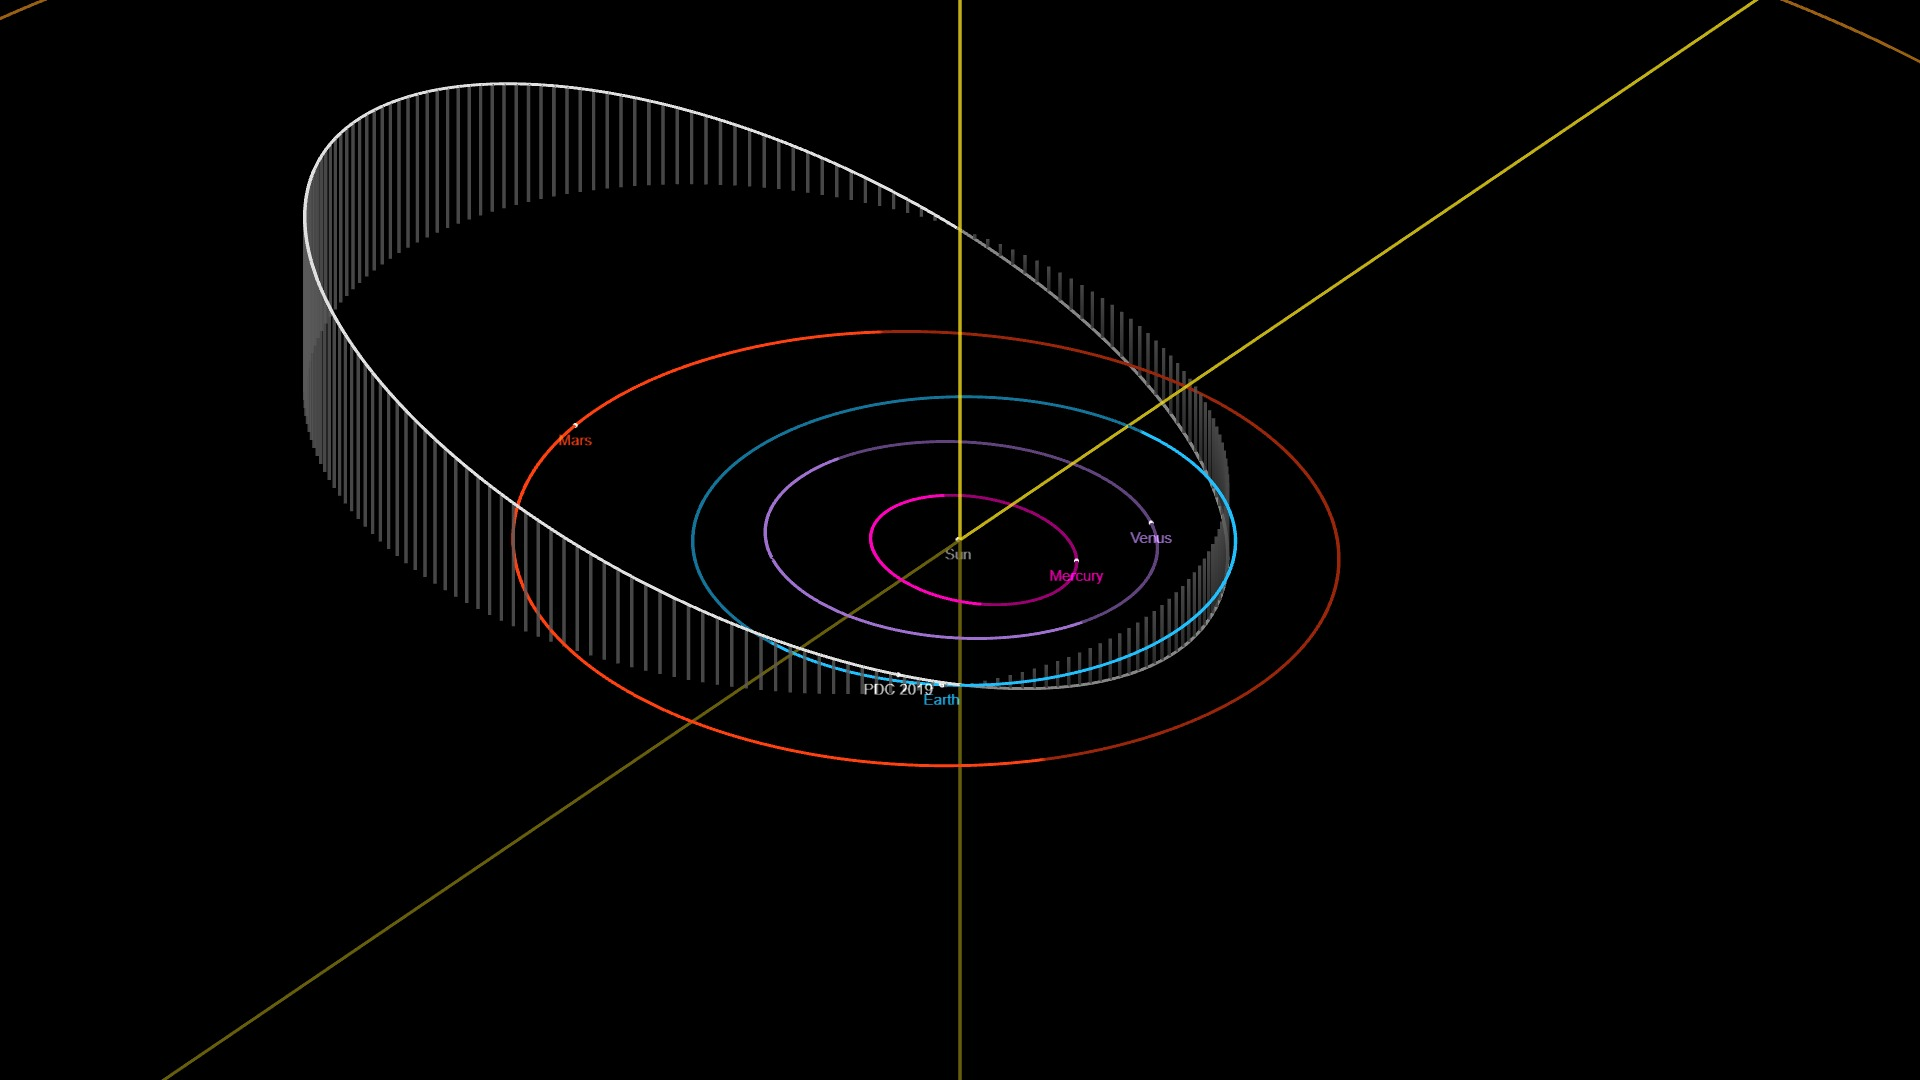 Rolling coverage: Brace for hypothetical asteroid impact – Rocket